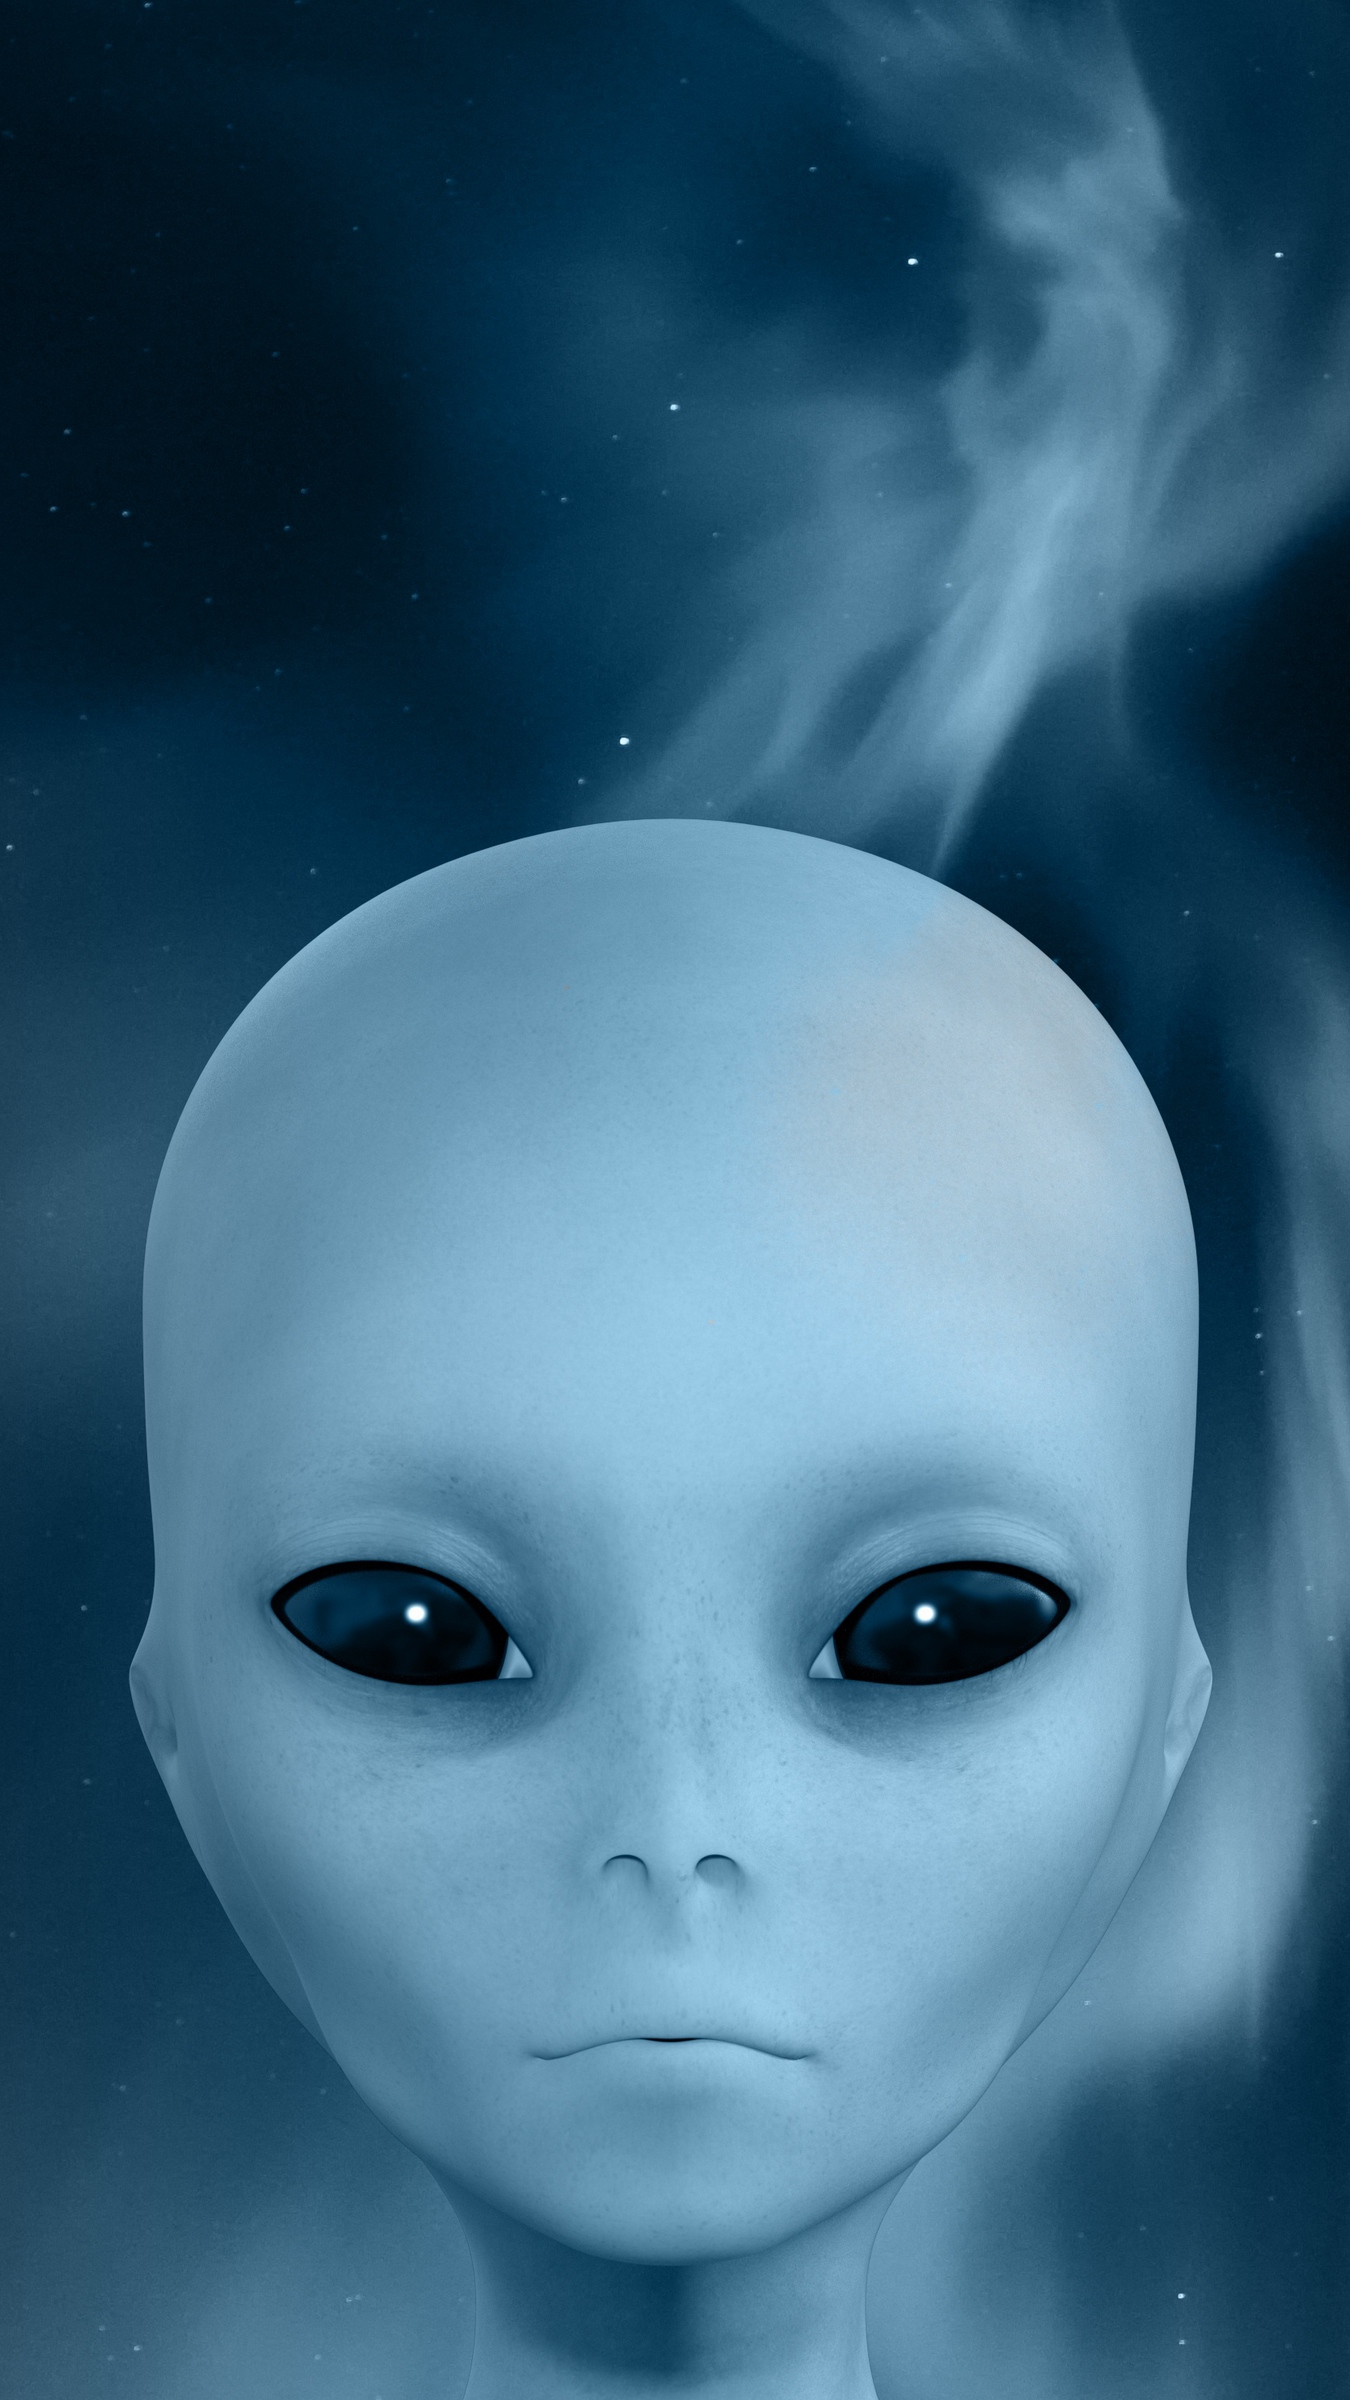 Alien Face Wallpapers High Quality Download Free